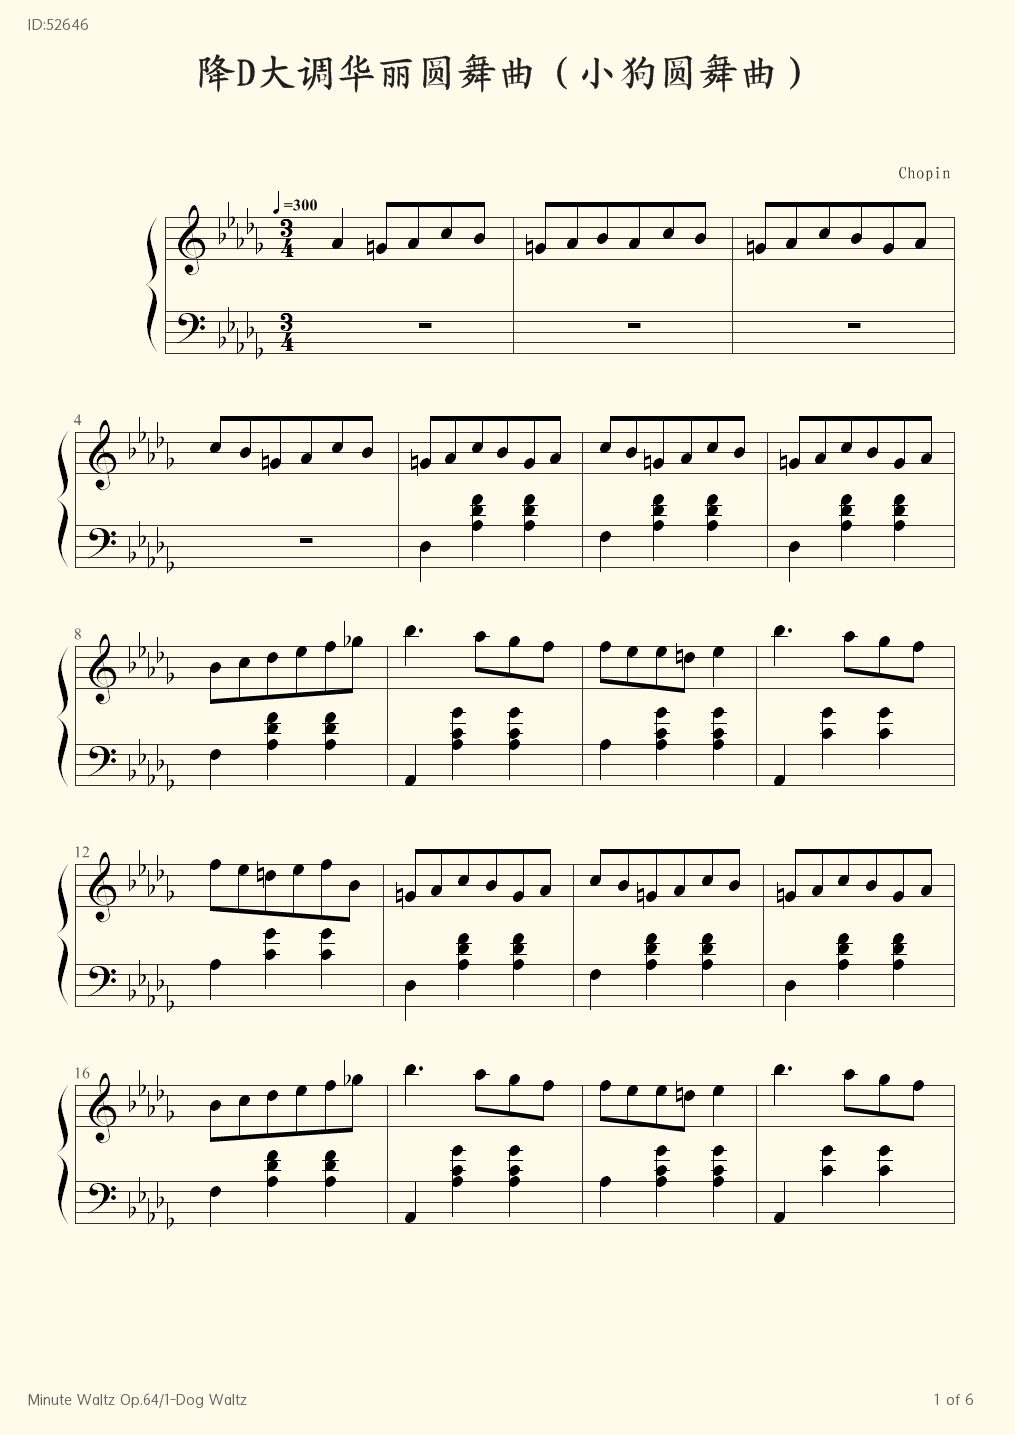 Minute Waltz Op 64 1 Dog Waltz - Chopin - first page